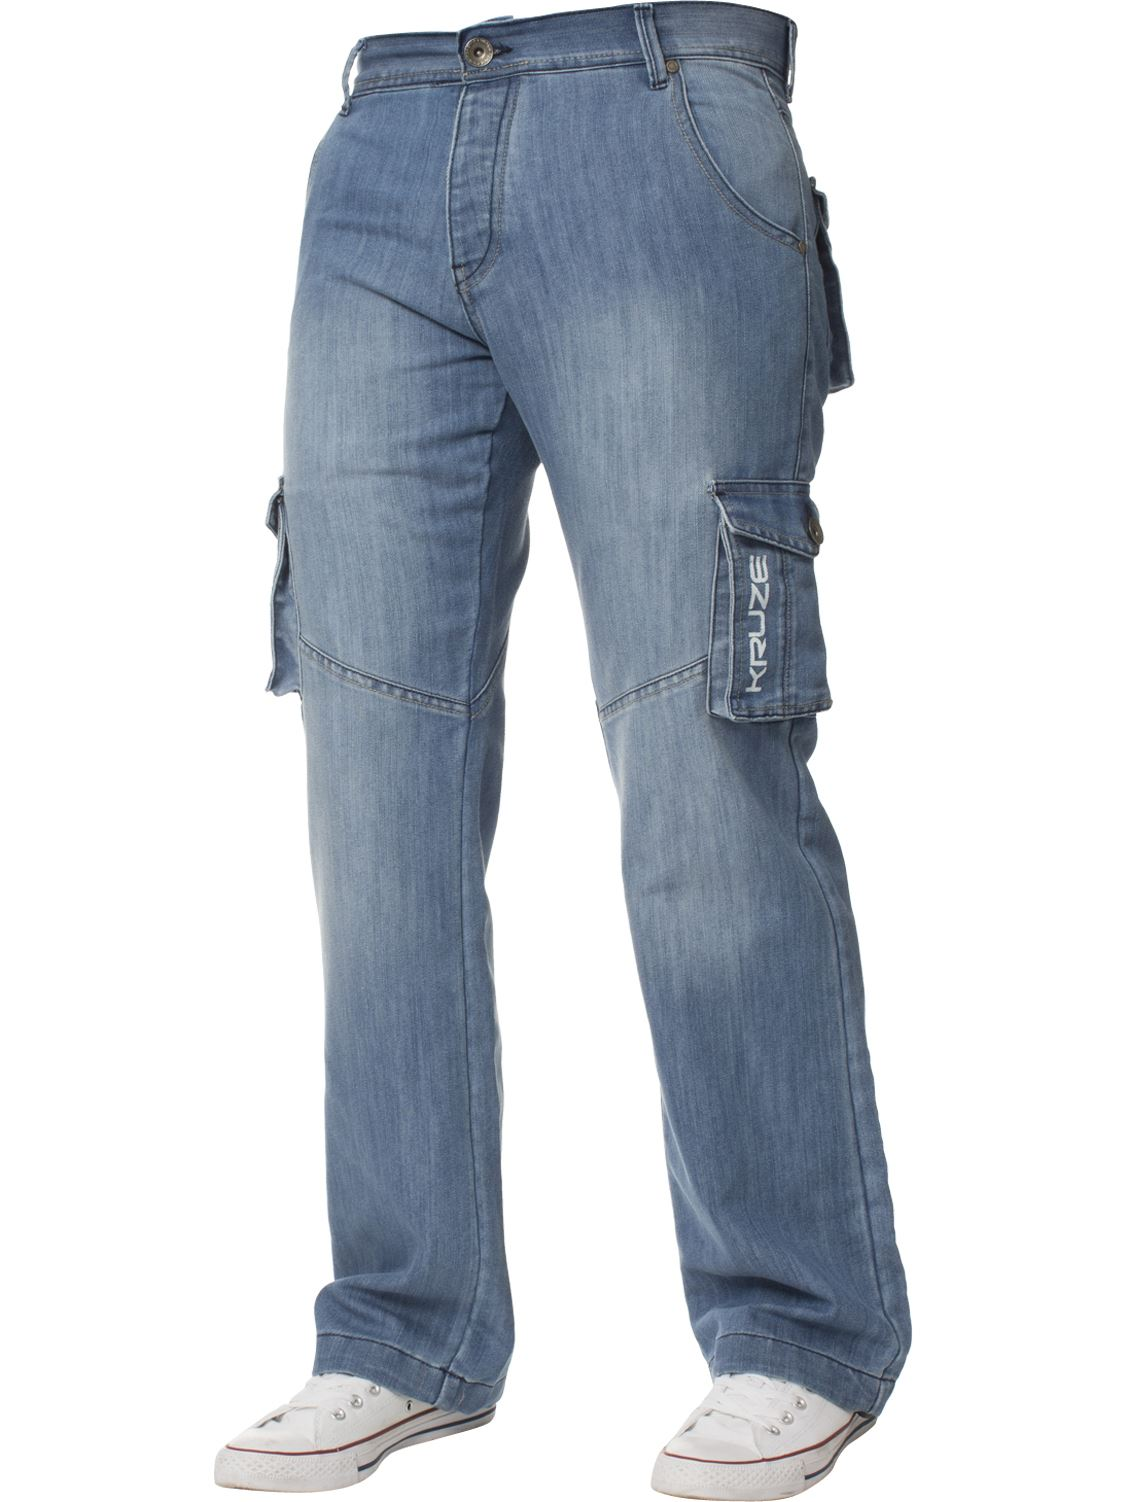 Mens-Cargo-Jeans-Combat-Trousers-Heavy-Duty-Work-Casual-Big-Tall-Denim-Pants thumbnail 85